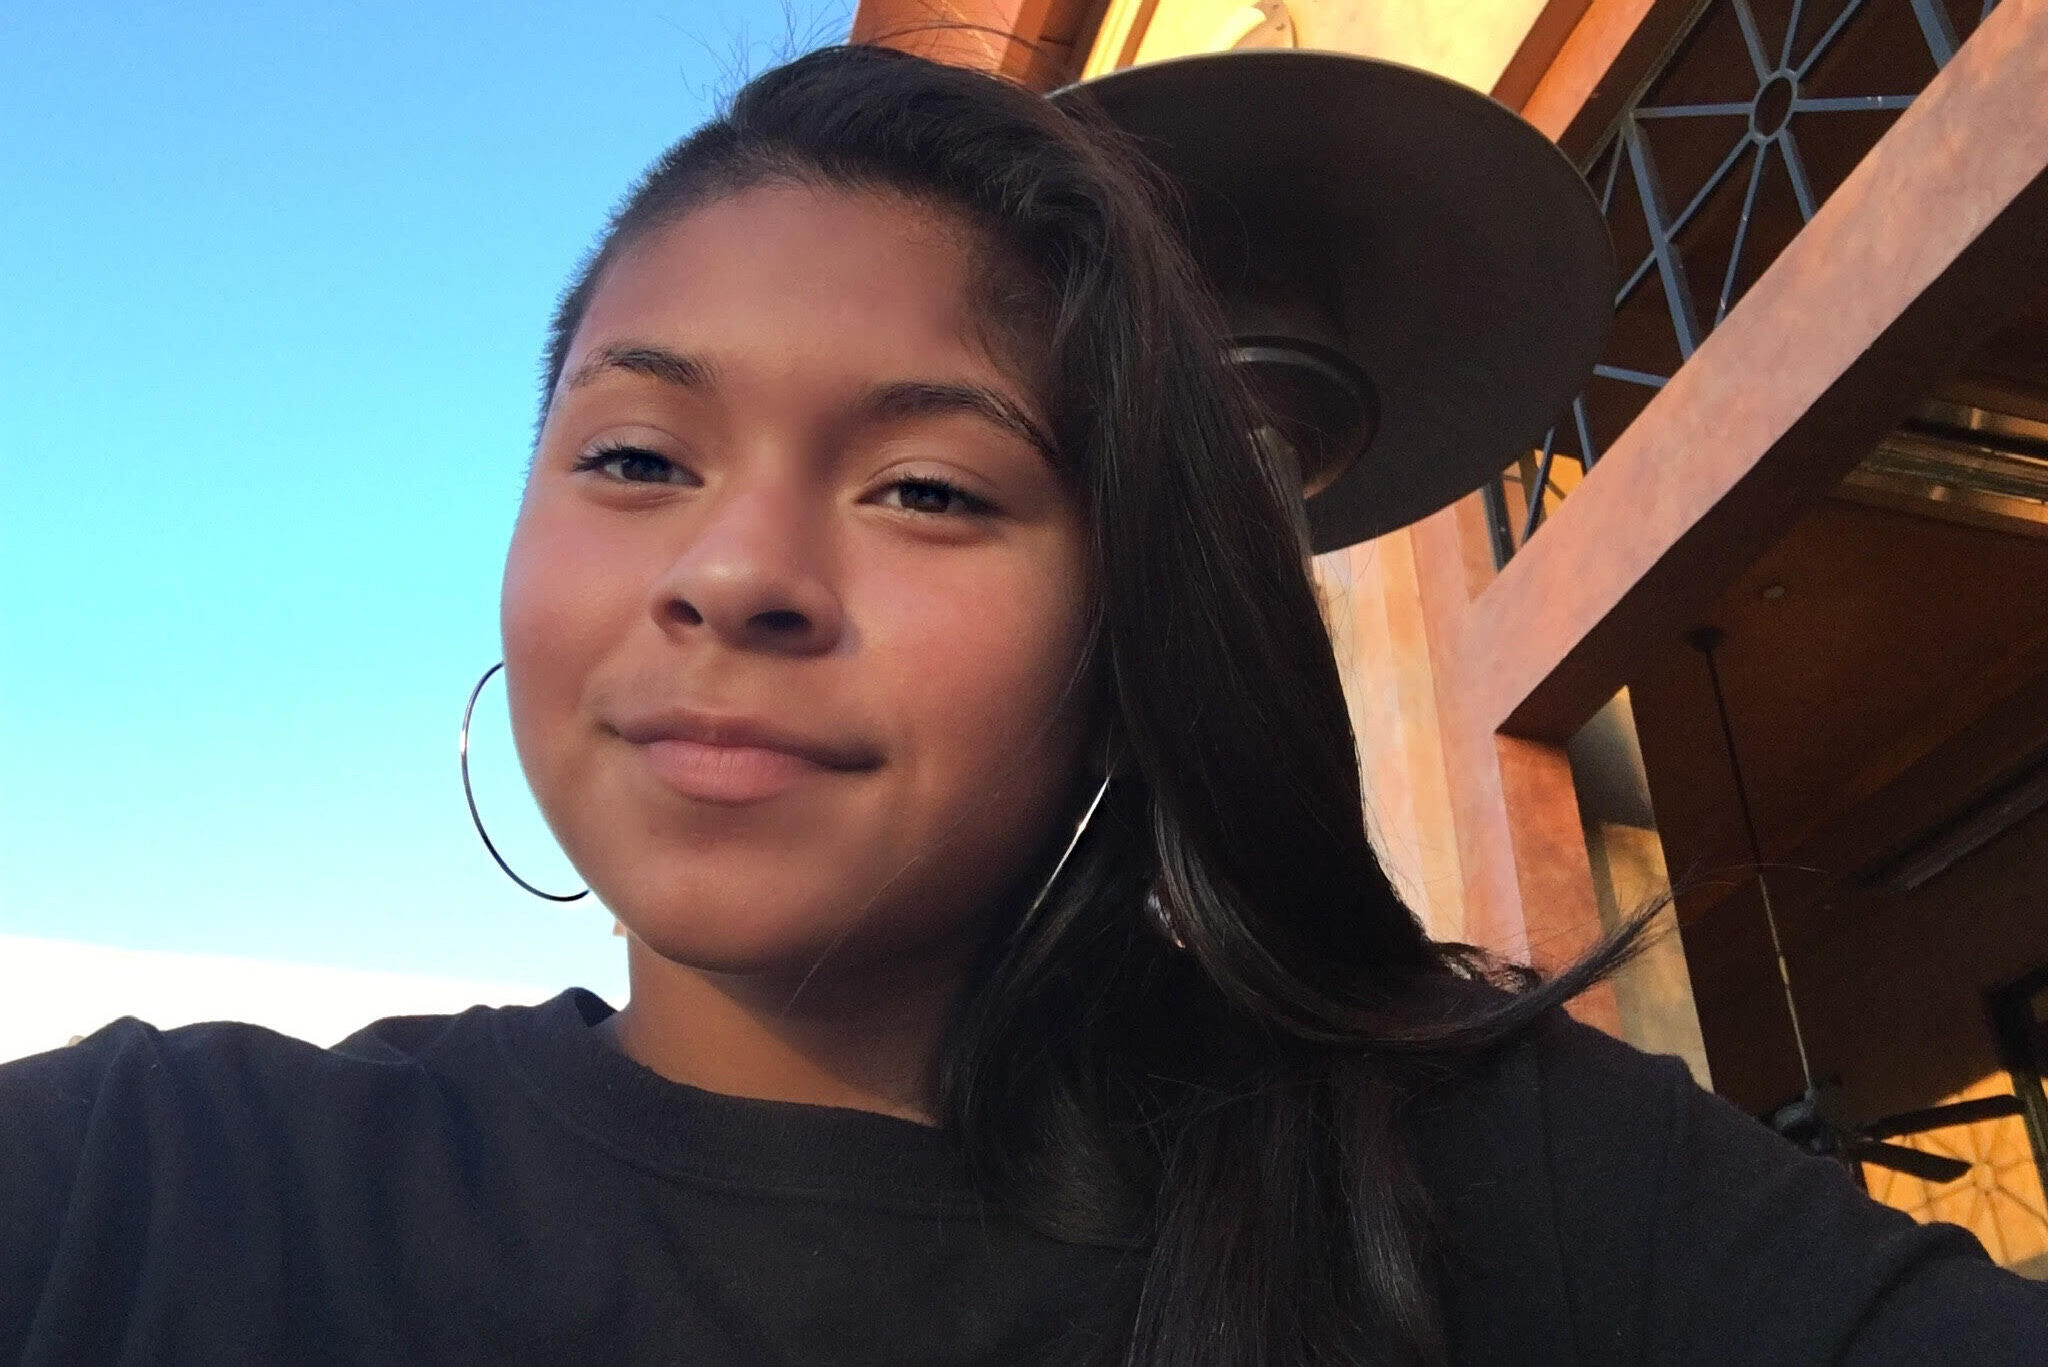 Because of the pandemic, 14-year-old Nadia Rivera will likely have to celebrate her quinceañera differently than she imagined.